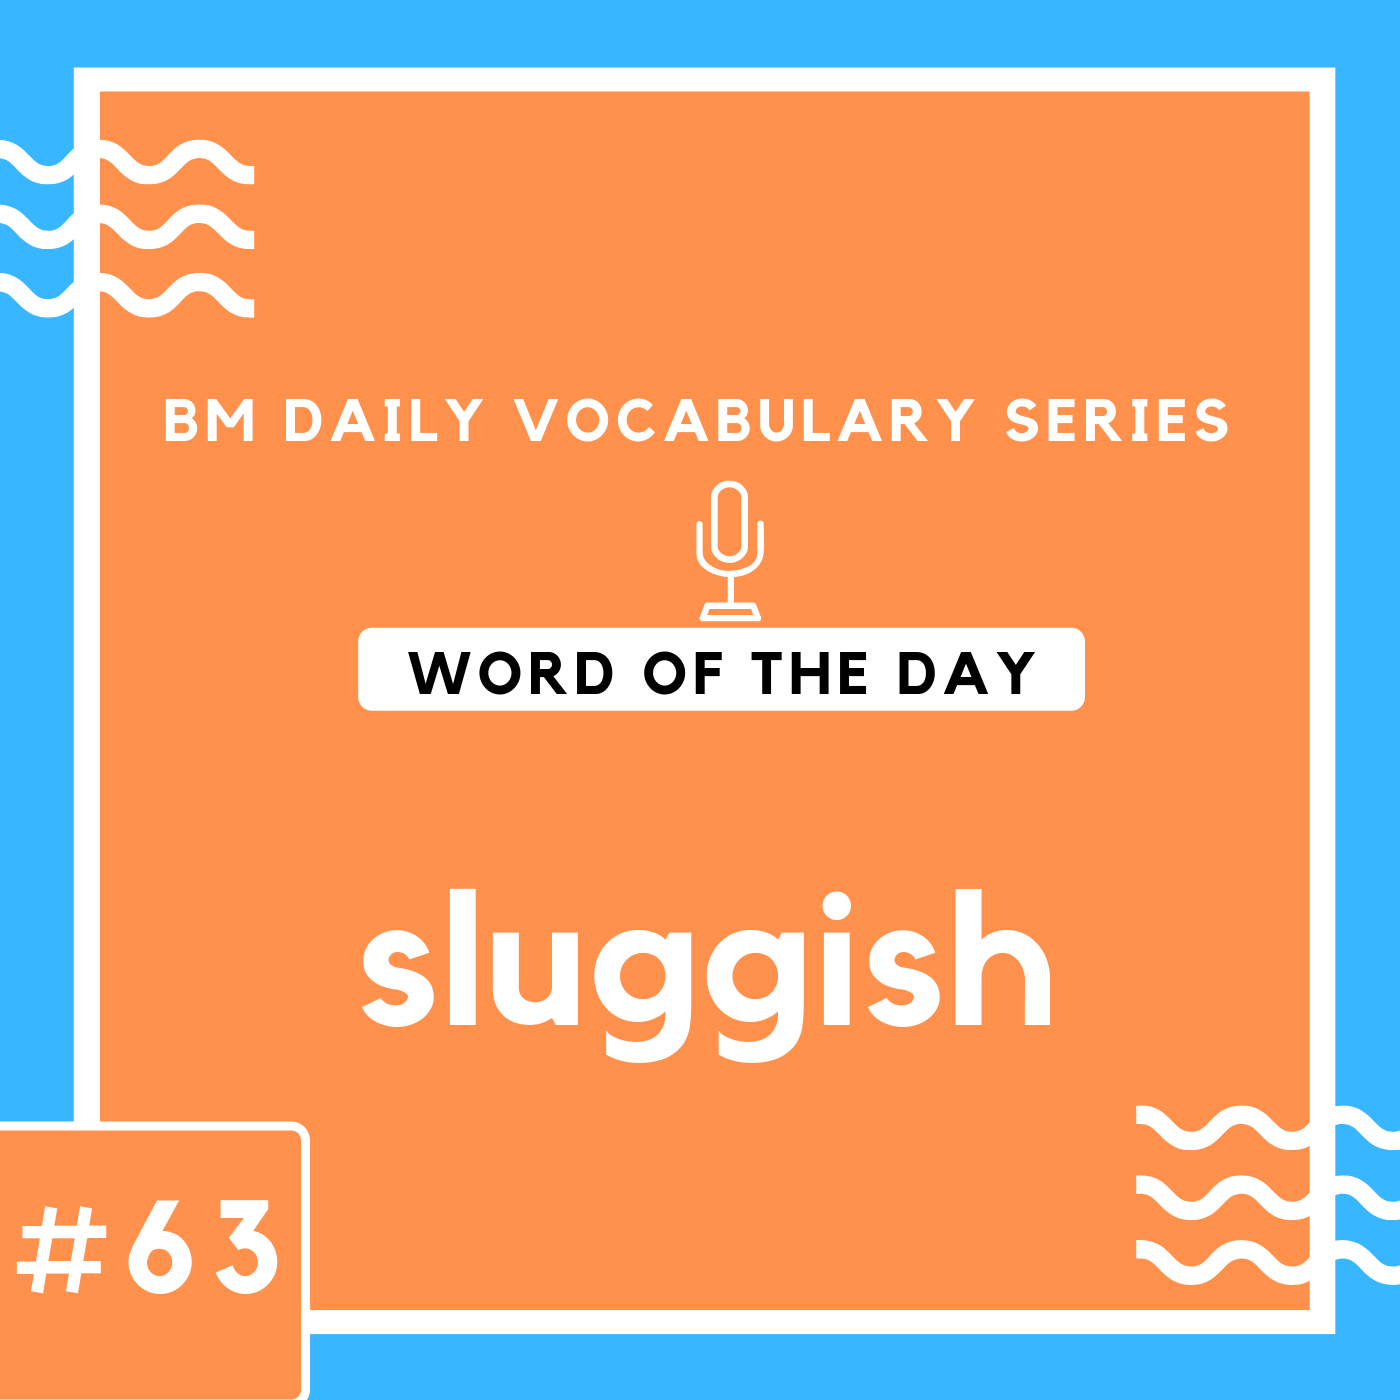 200 BM Daily Vocabulary #63 | sluggish